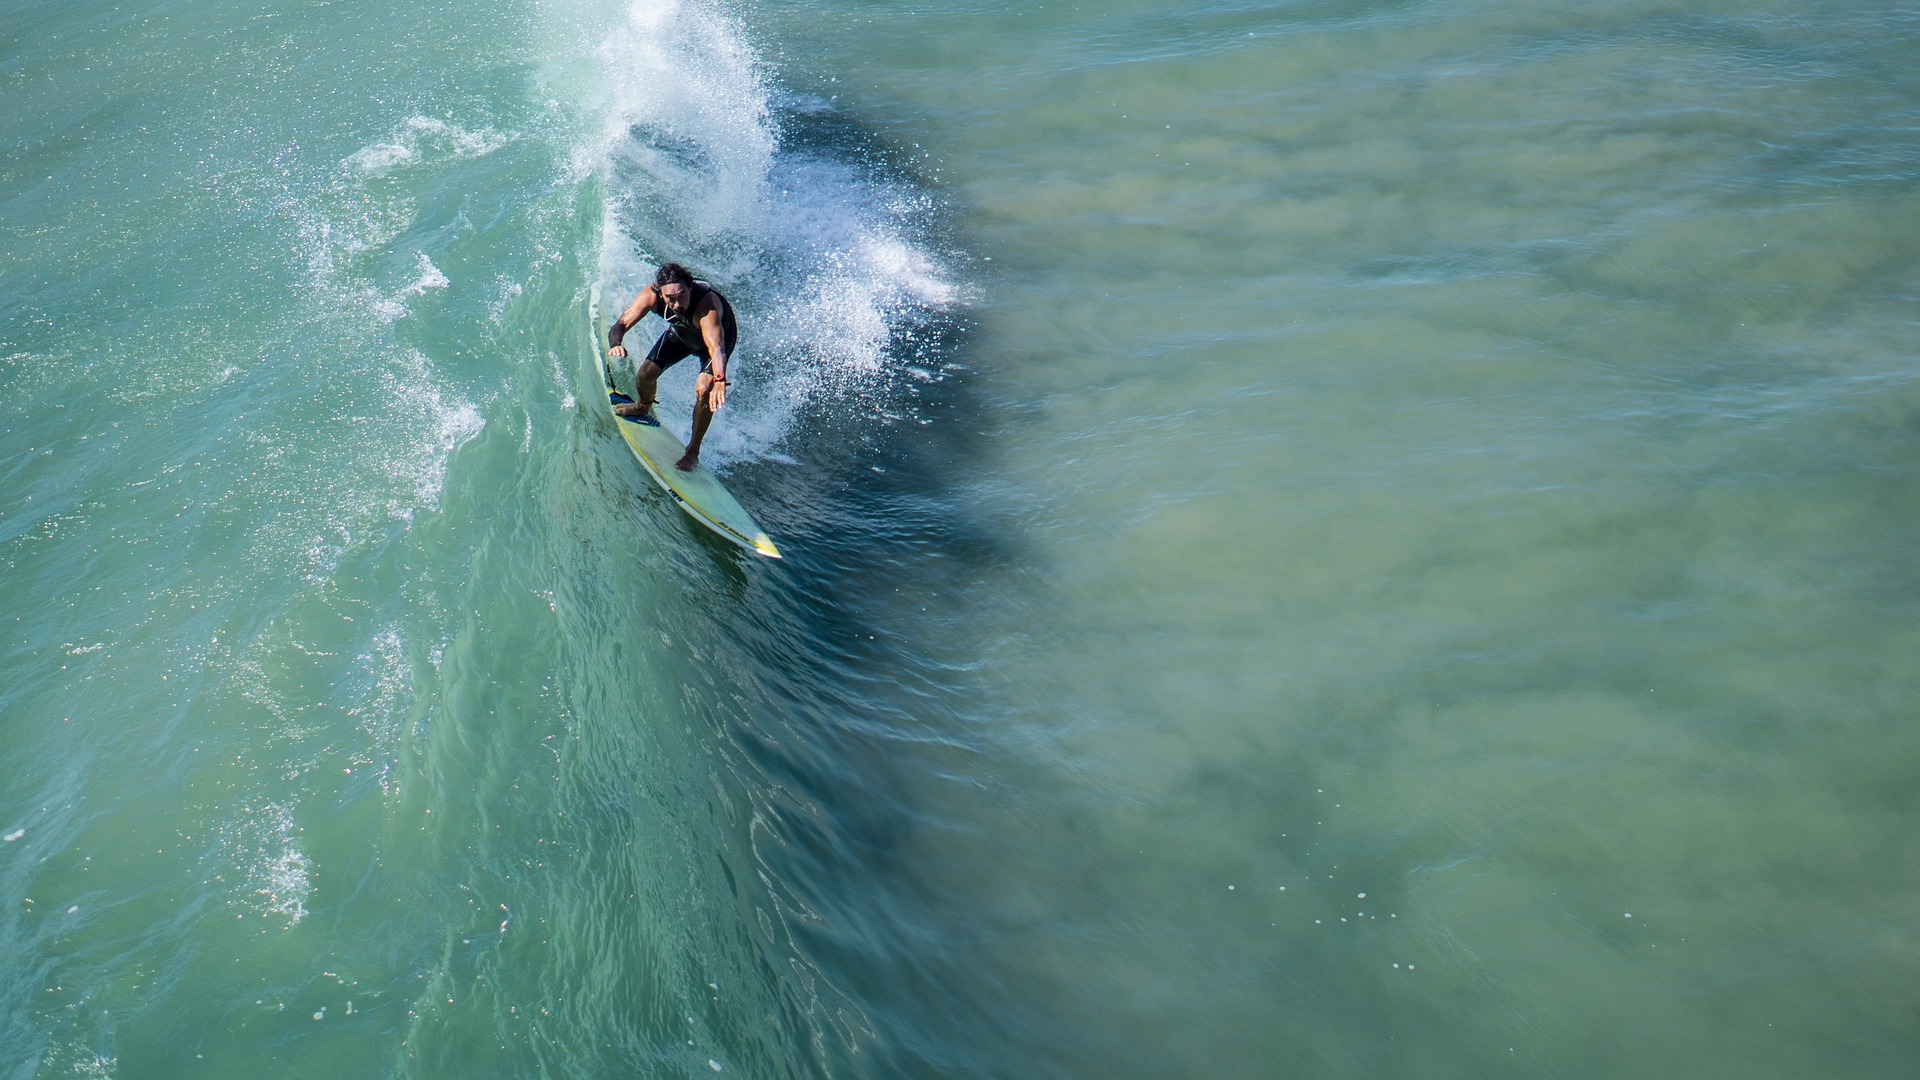 Best Places To Enjoy Surfing Water Sports In USA